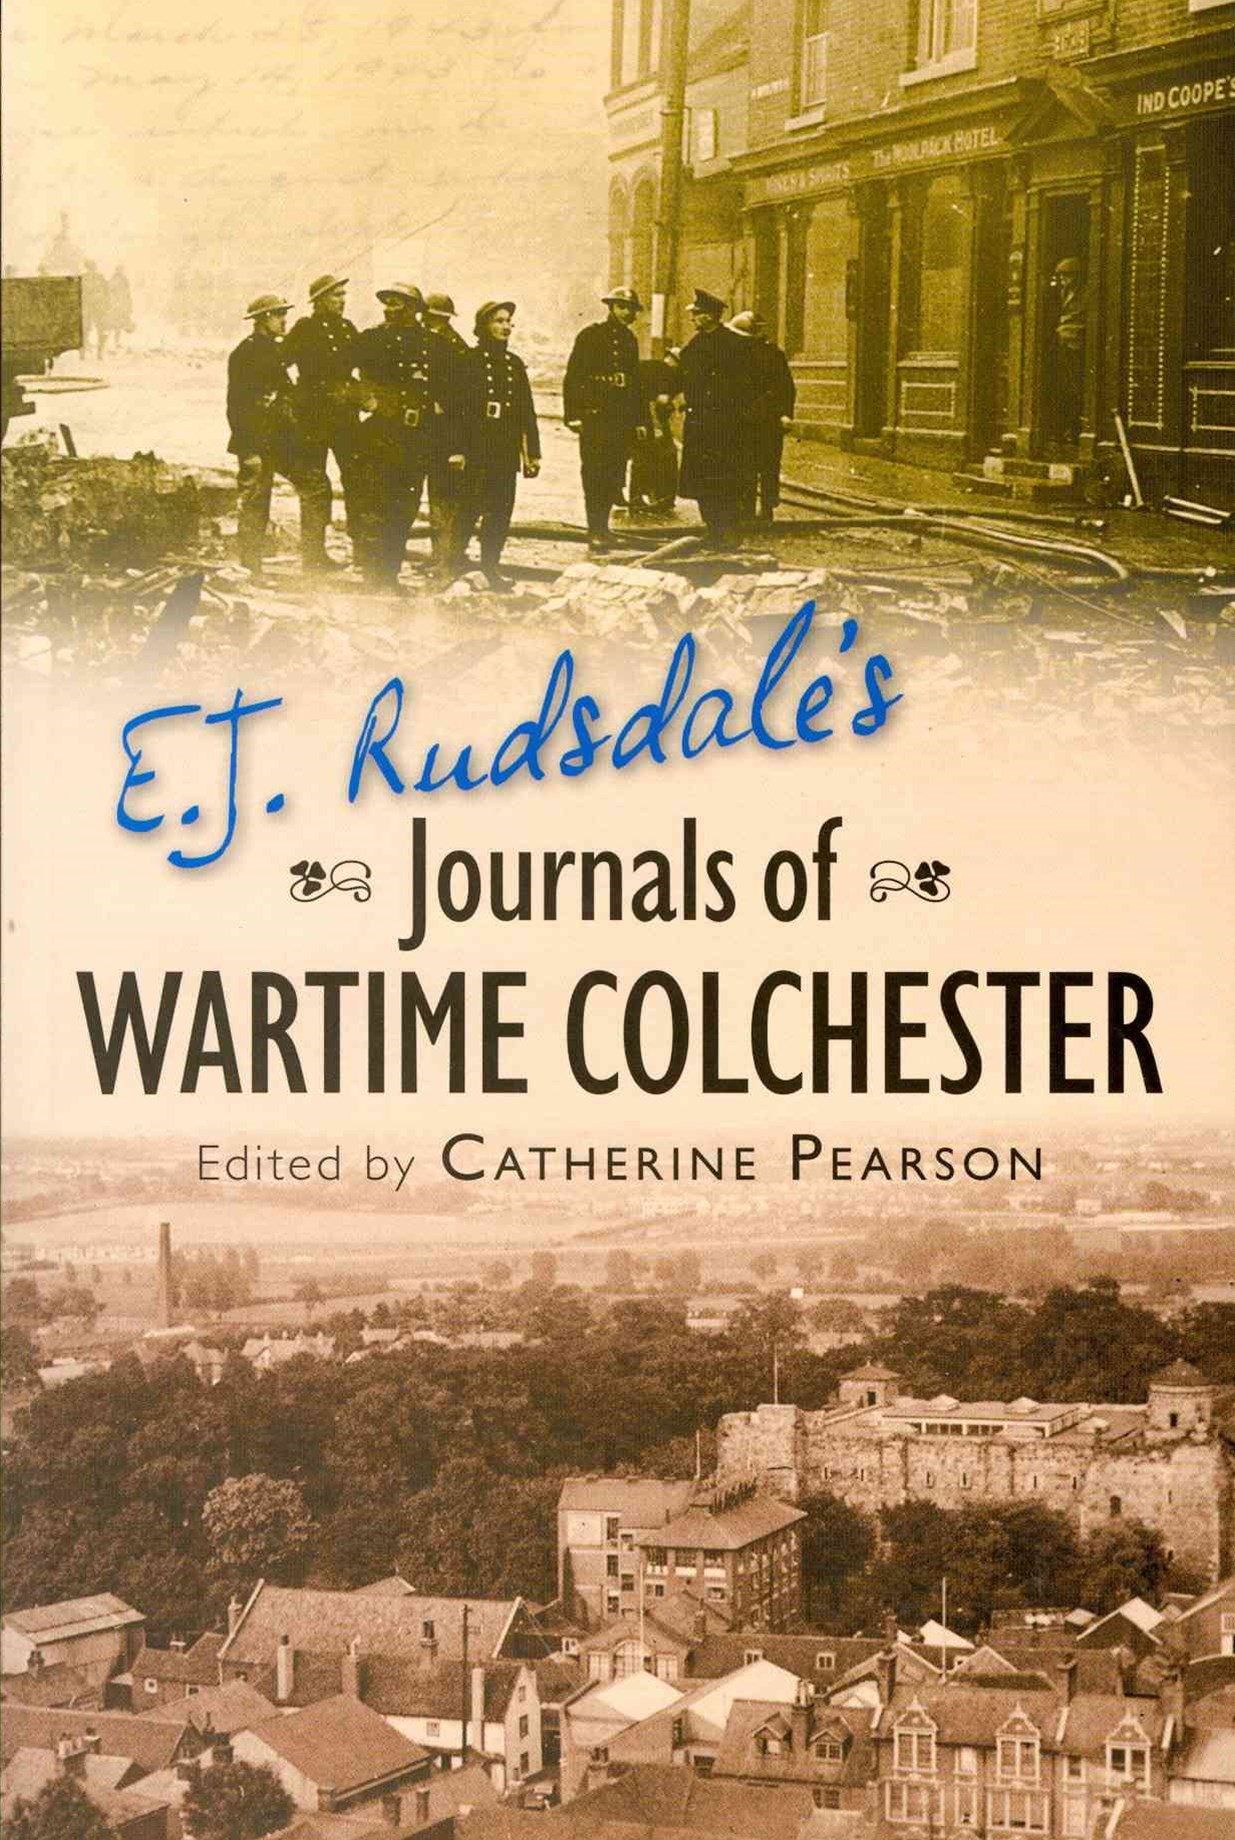 E. J. Rudsdale's Journals of Wartime Colchester